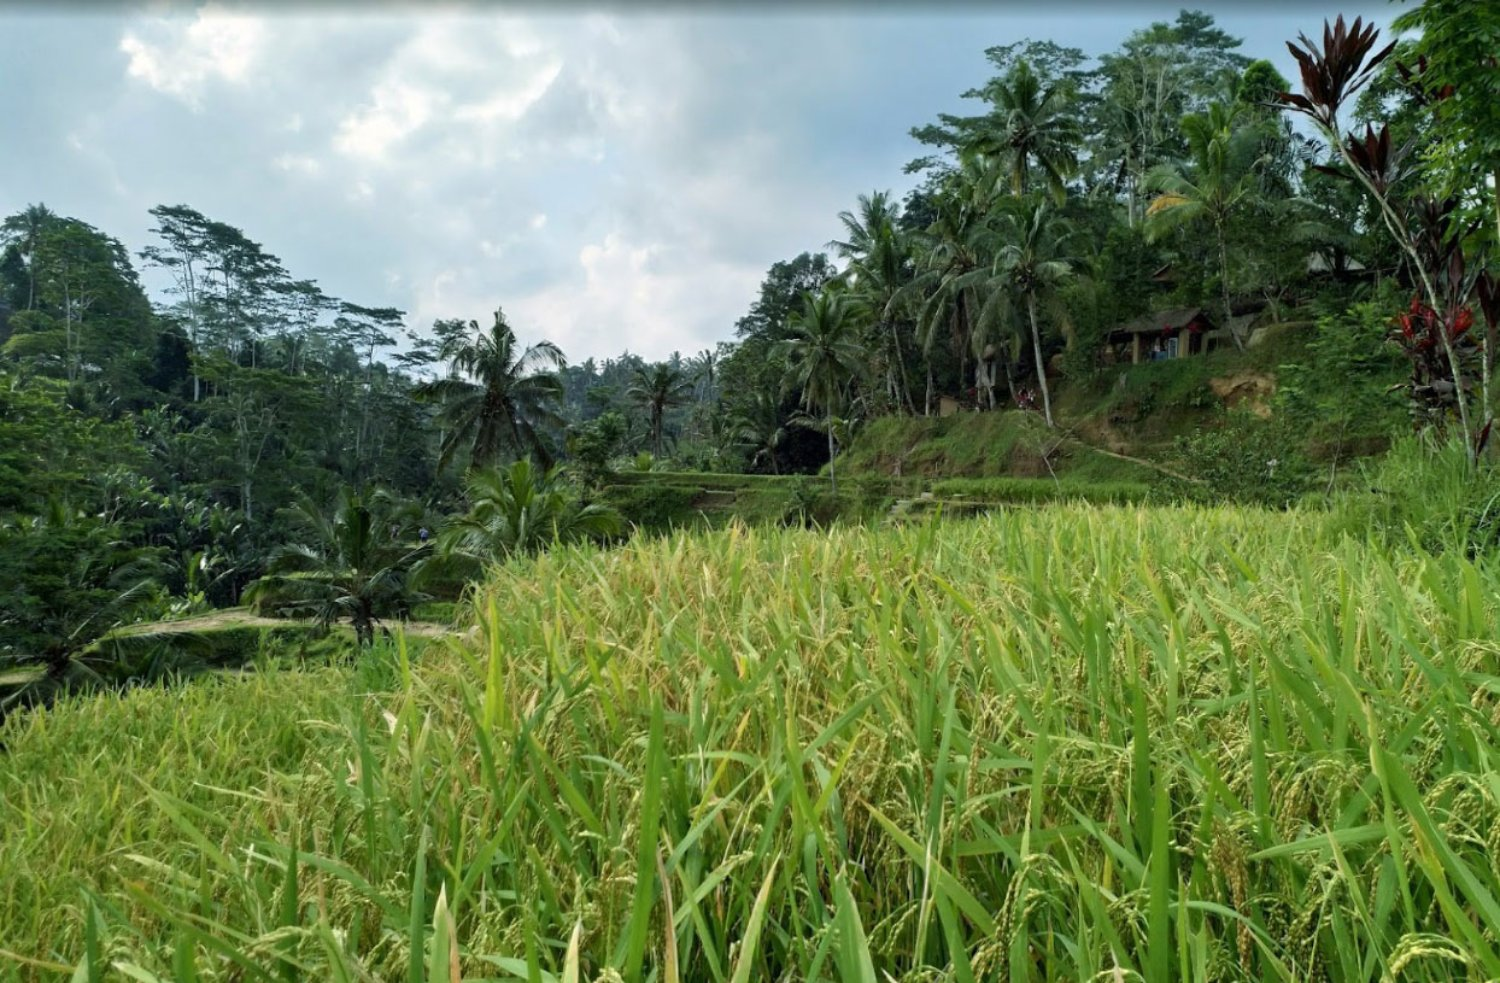 Green Paddy Field in Tegalalang